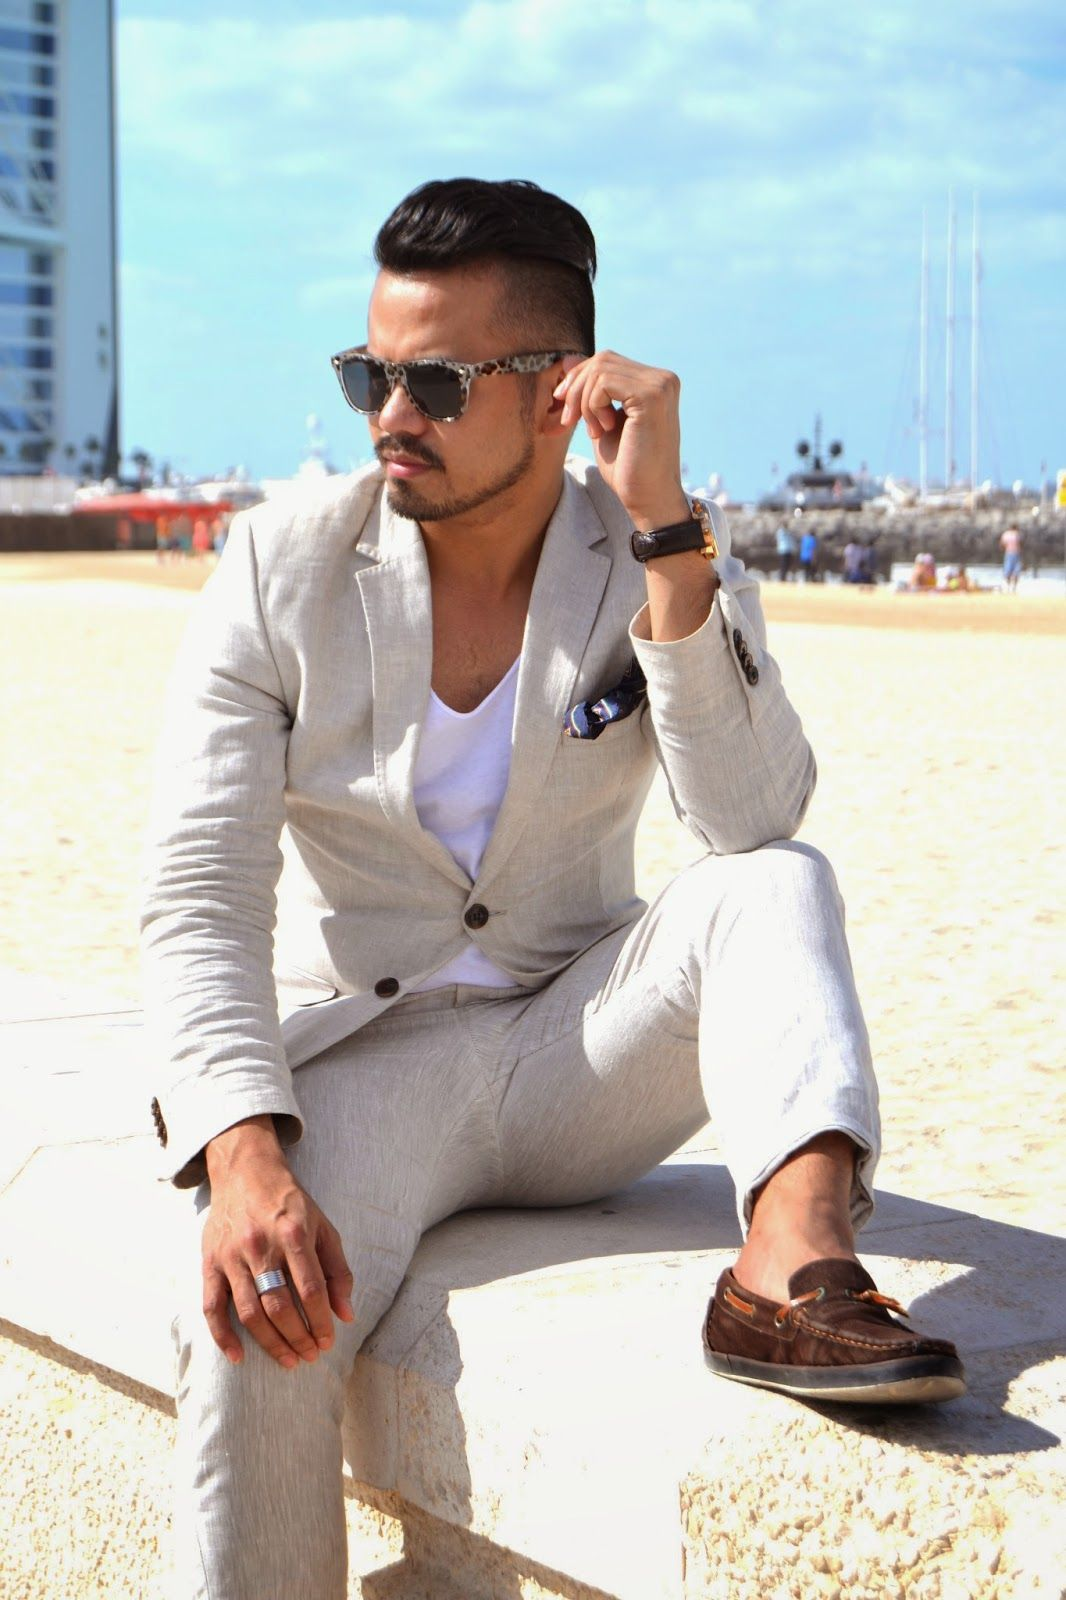 Inspiration 65 Follow Guidomaggi Shoes Pinterest Guidomaggi Shoes Instagram Menstyle1 Fac Mens Fashion Inspiration Stylish Mens Outfits Mens Fashion Blog